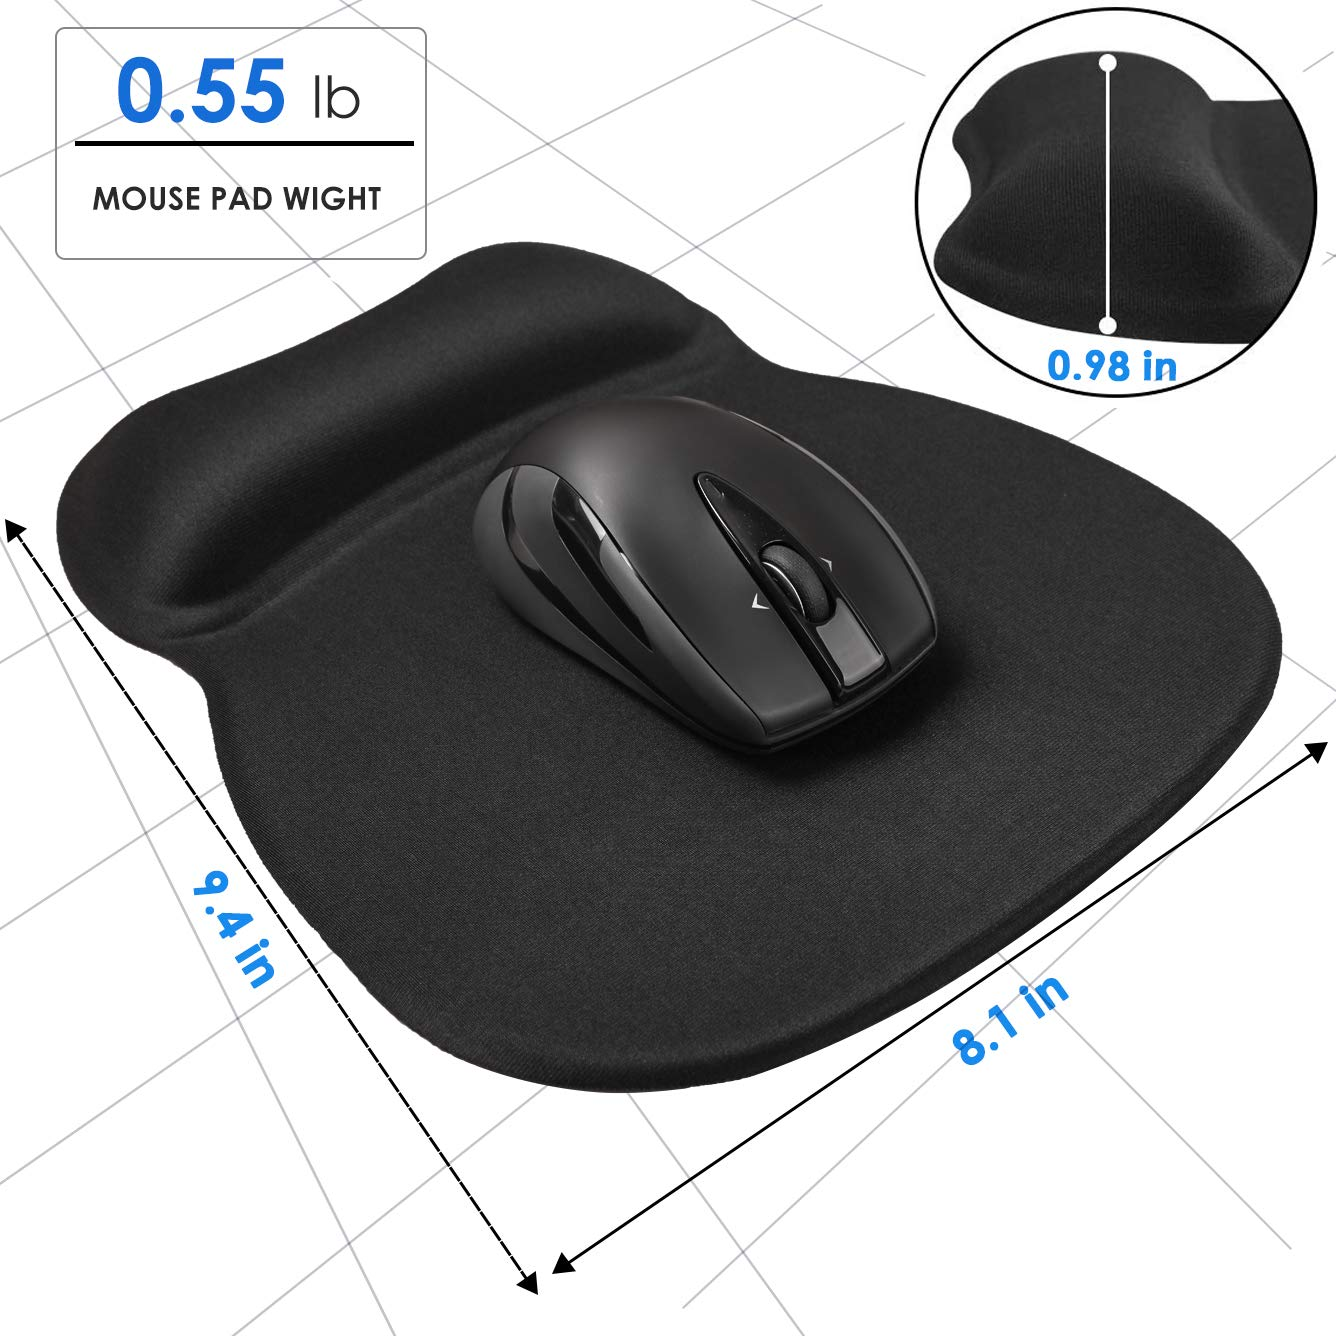 A MROCO Gel Mouse Pad will Save your Wrists